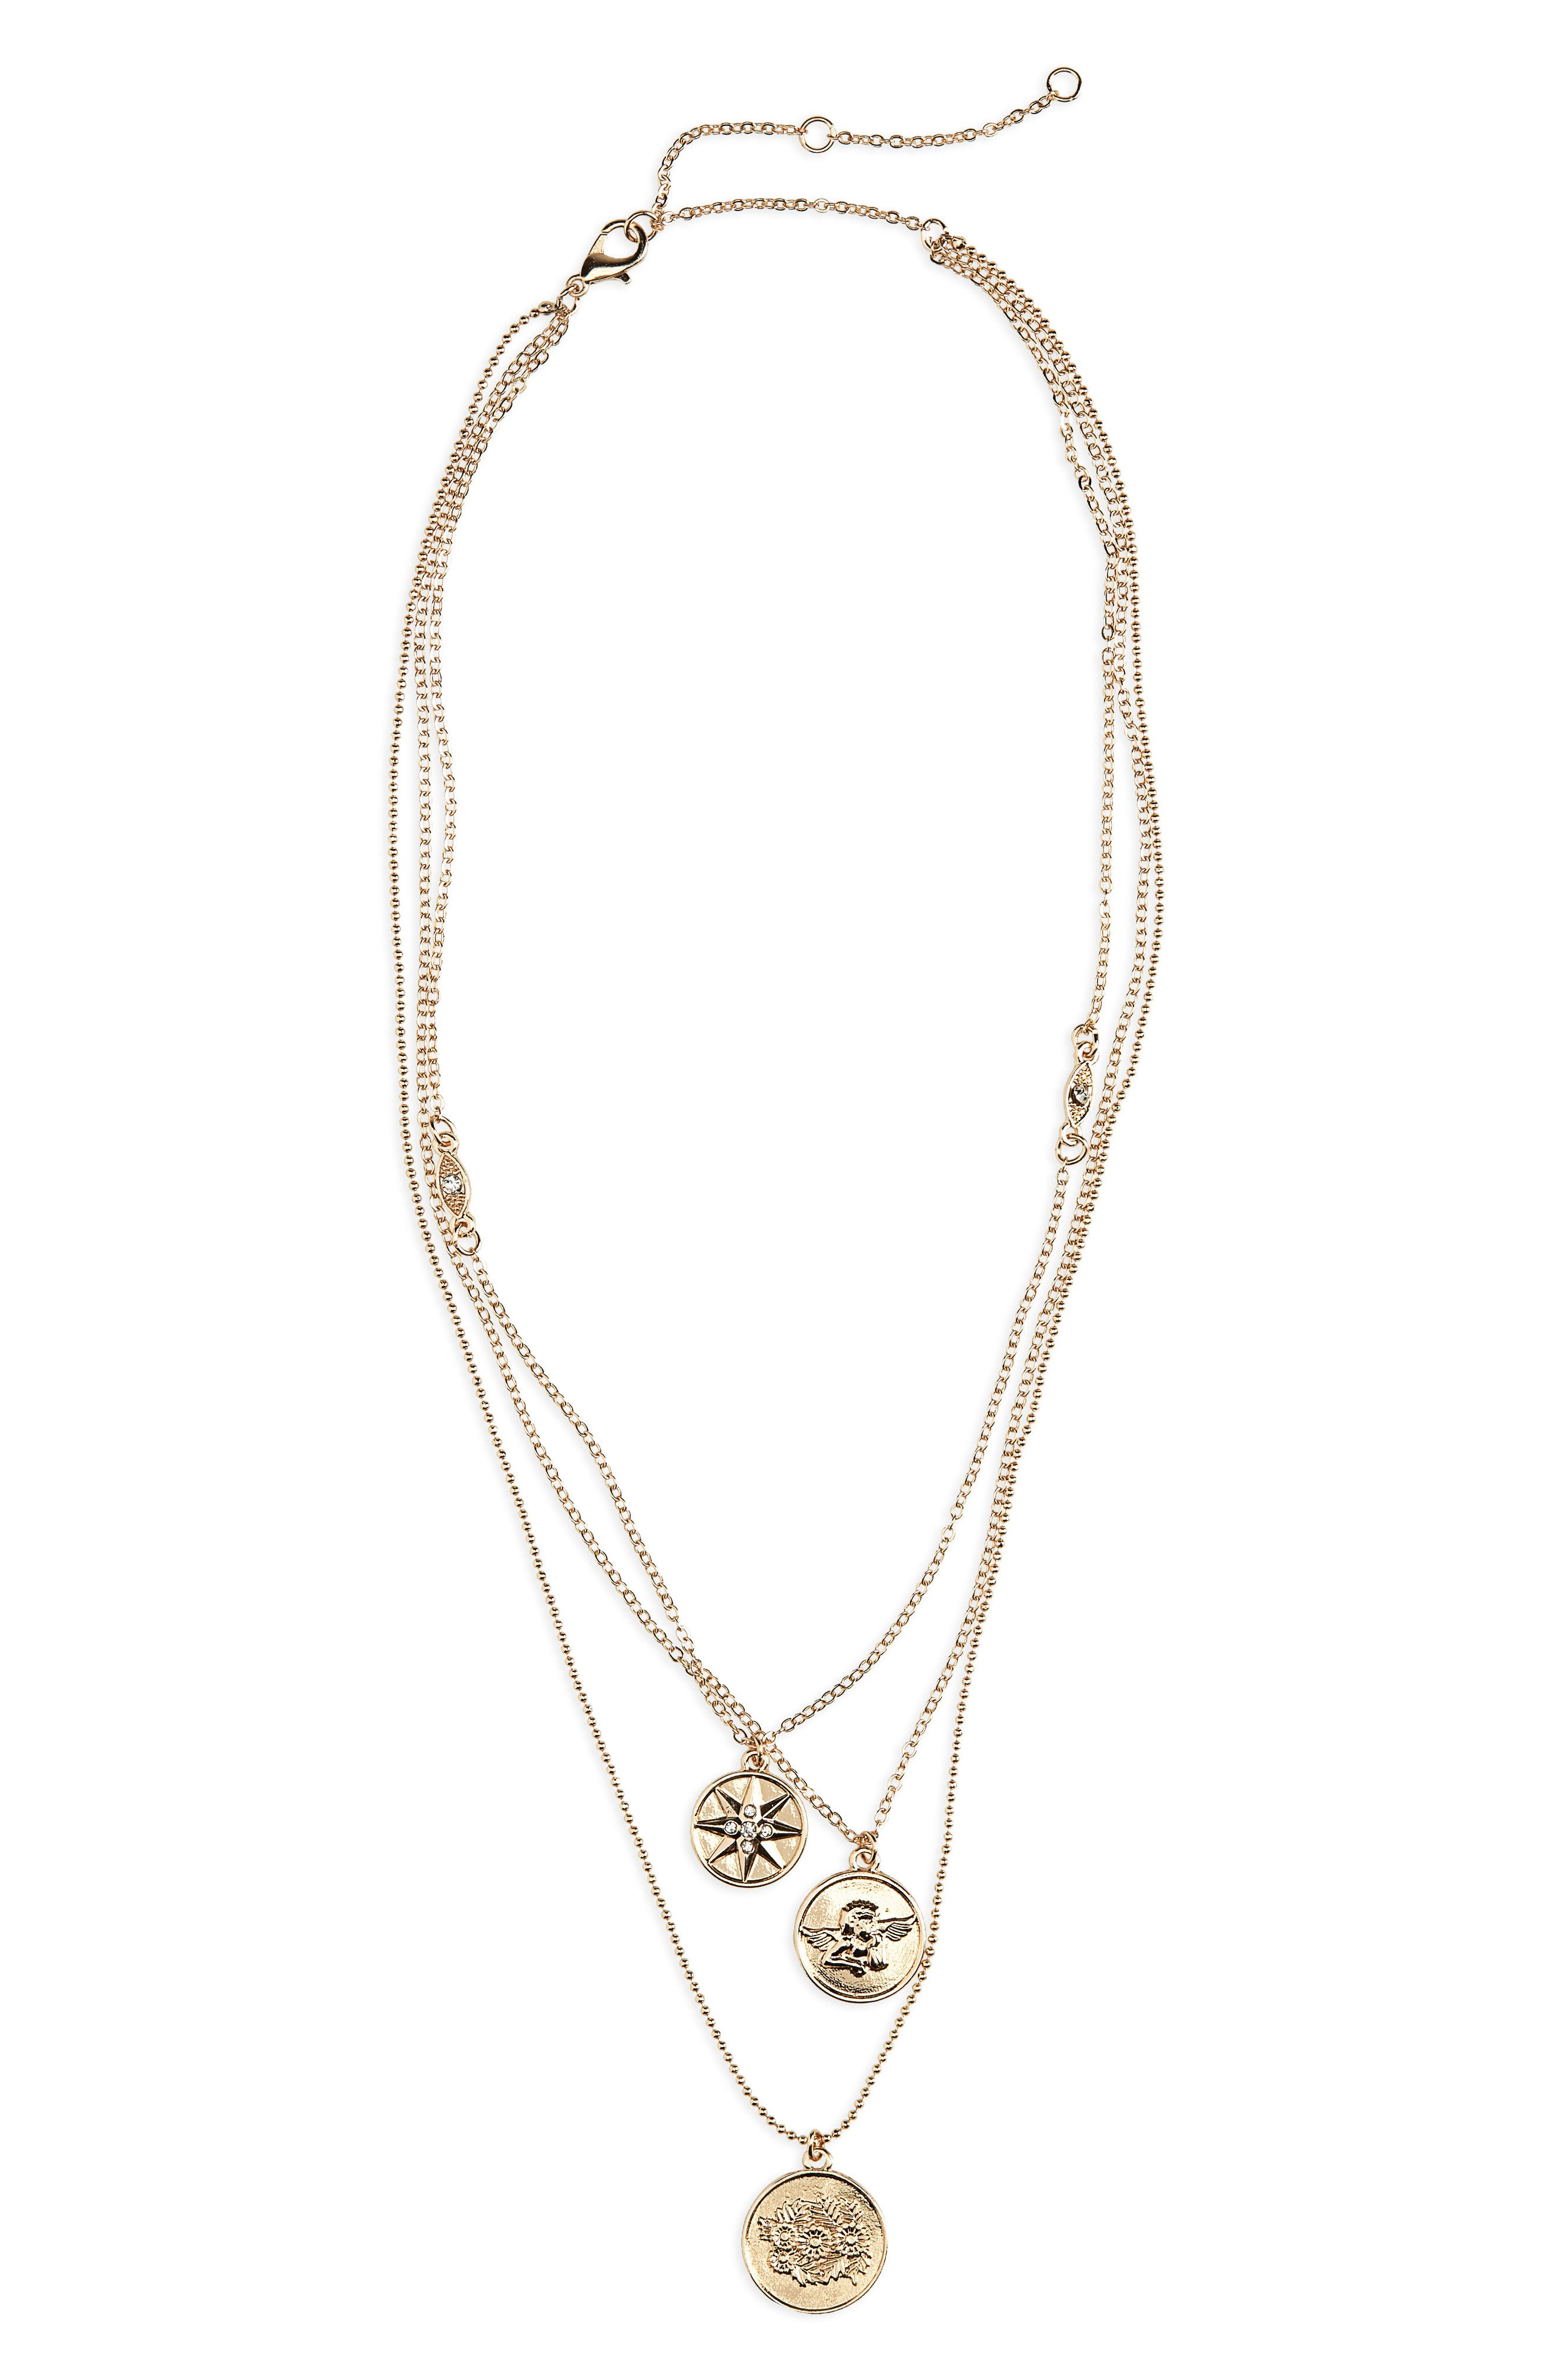 Three-Layer Charm Necklace,                             Main thumbnail 1, color,                             710